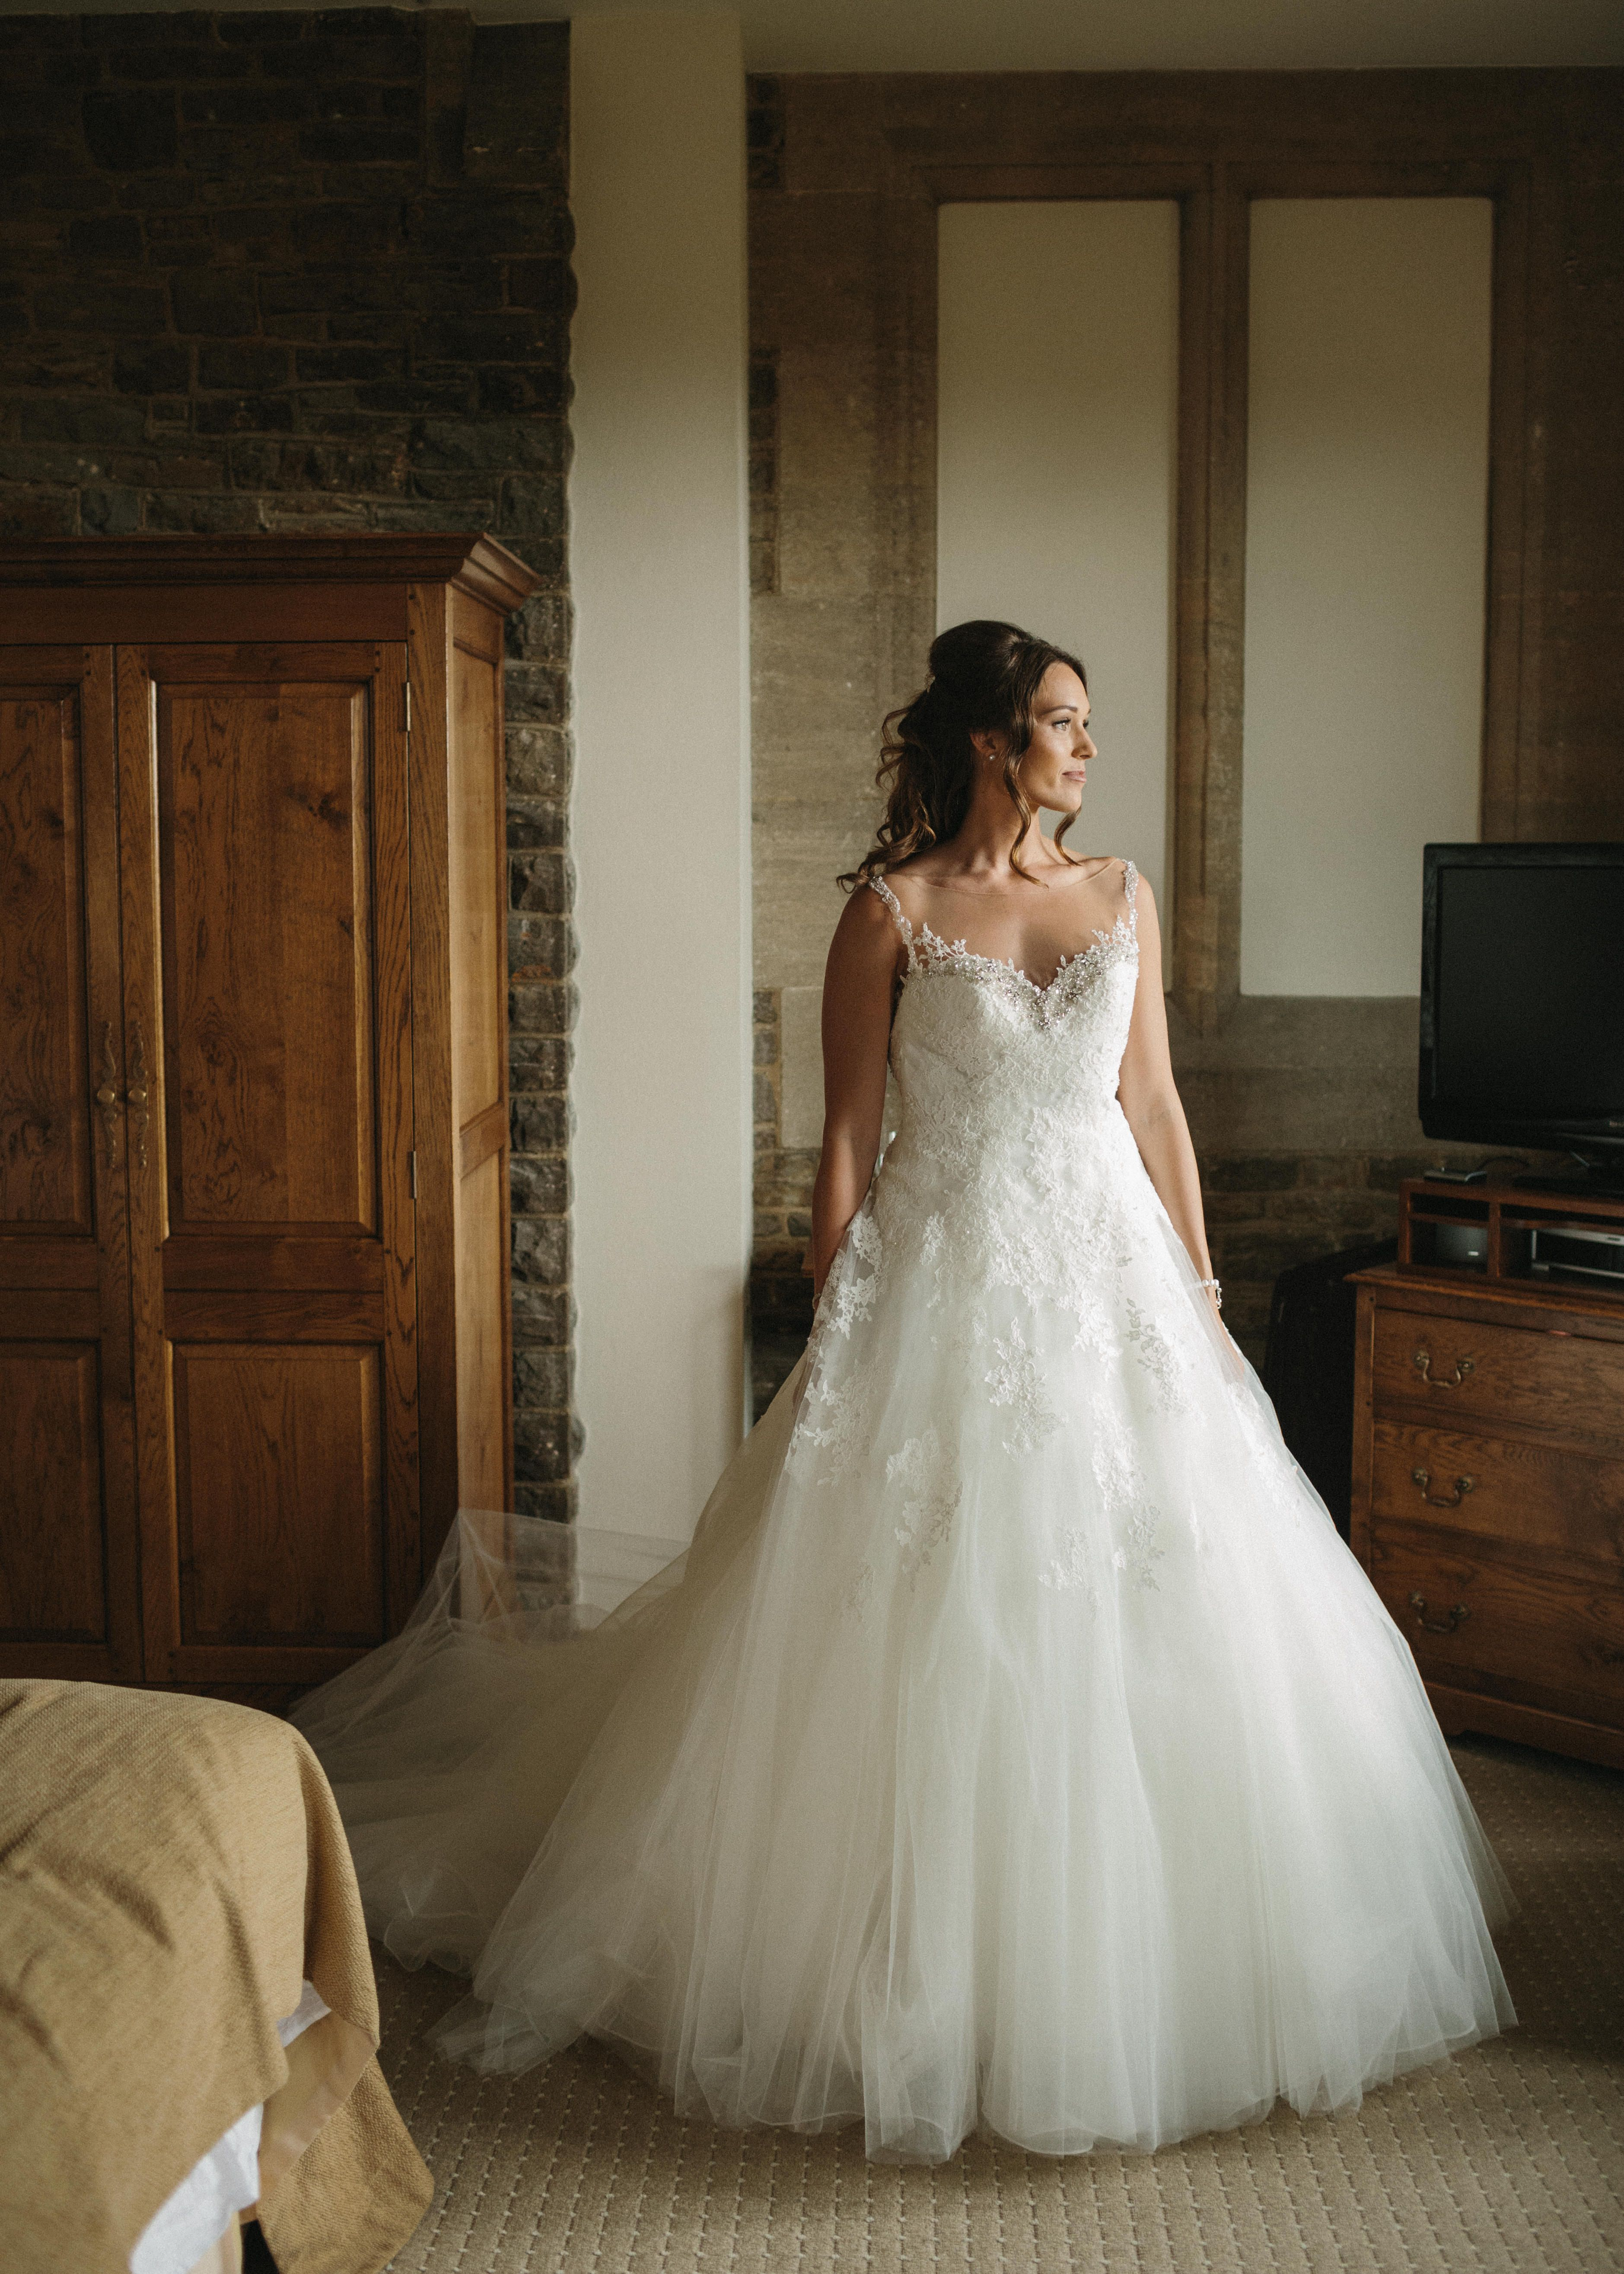 Pronovias Wedding dress and incredible wedding photographer. Read more here ... Www.LeanLivingGirl.com